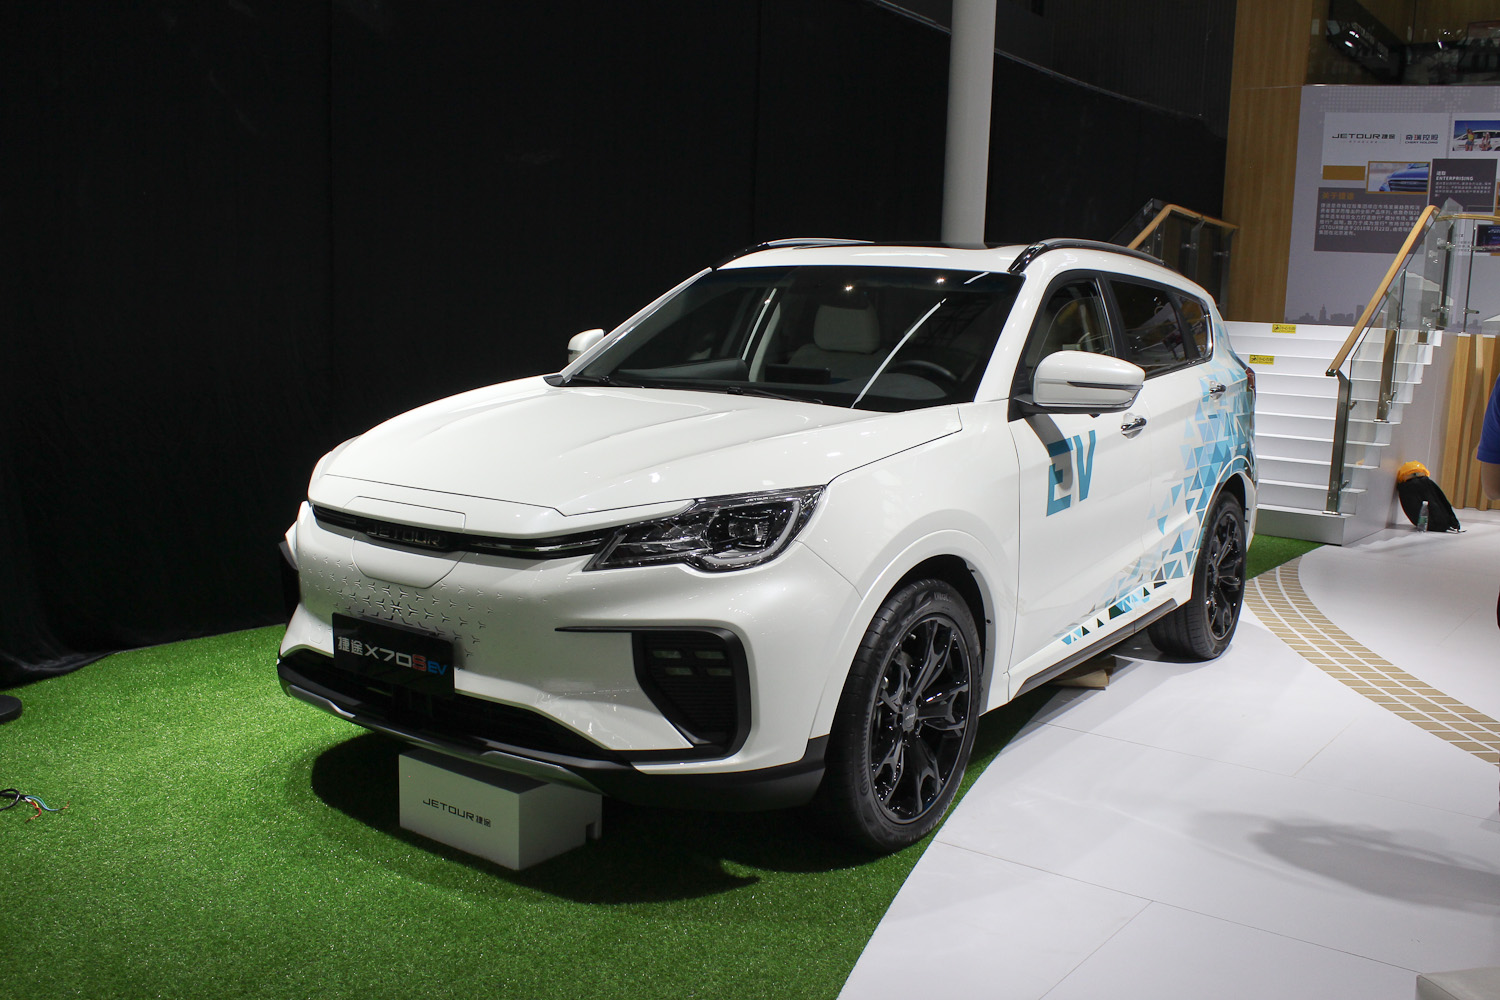 Jetour, a sub-brand of Chery, revealed the second generation of its X70 Plus SUV this autumn, landing it with a number of considerable improvements. Some of us had expected the all-electric X70S EV to follow suit, but it only received a slight refresh.